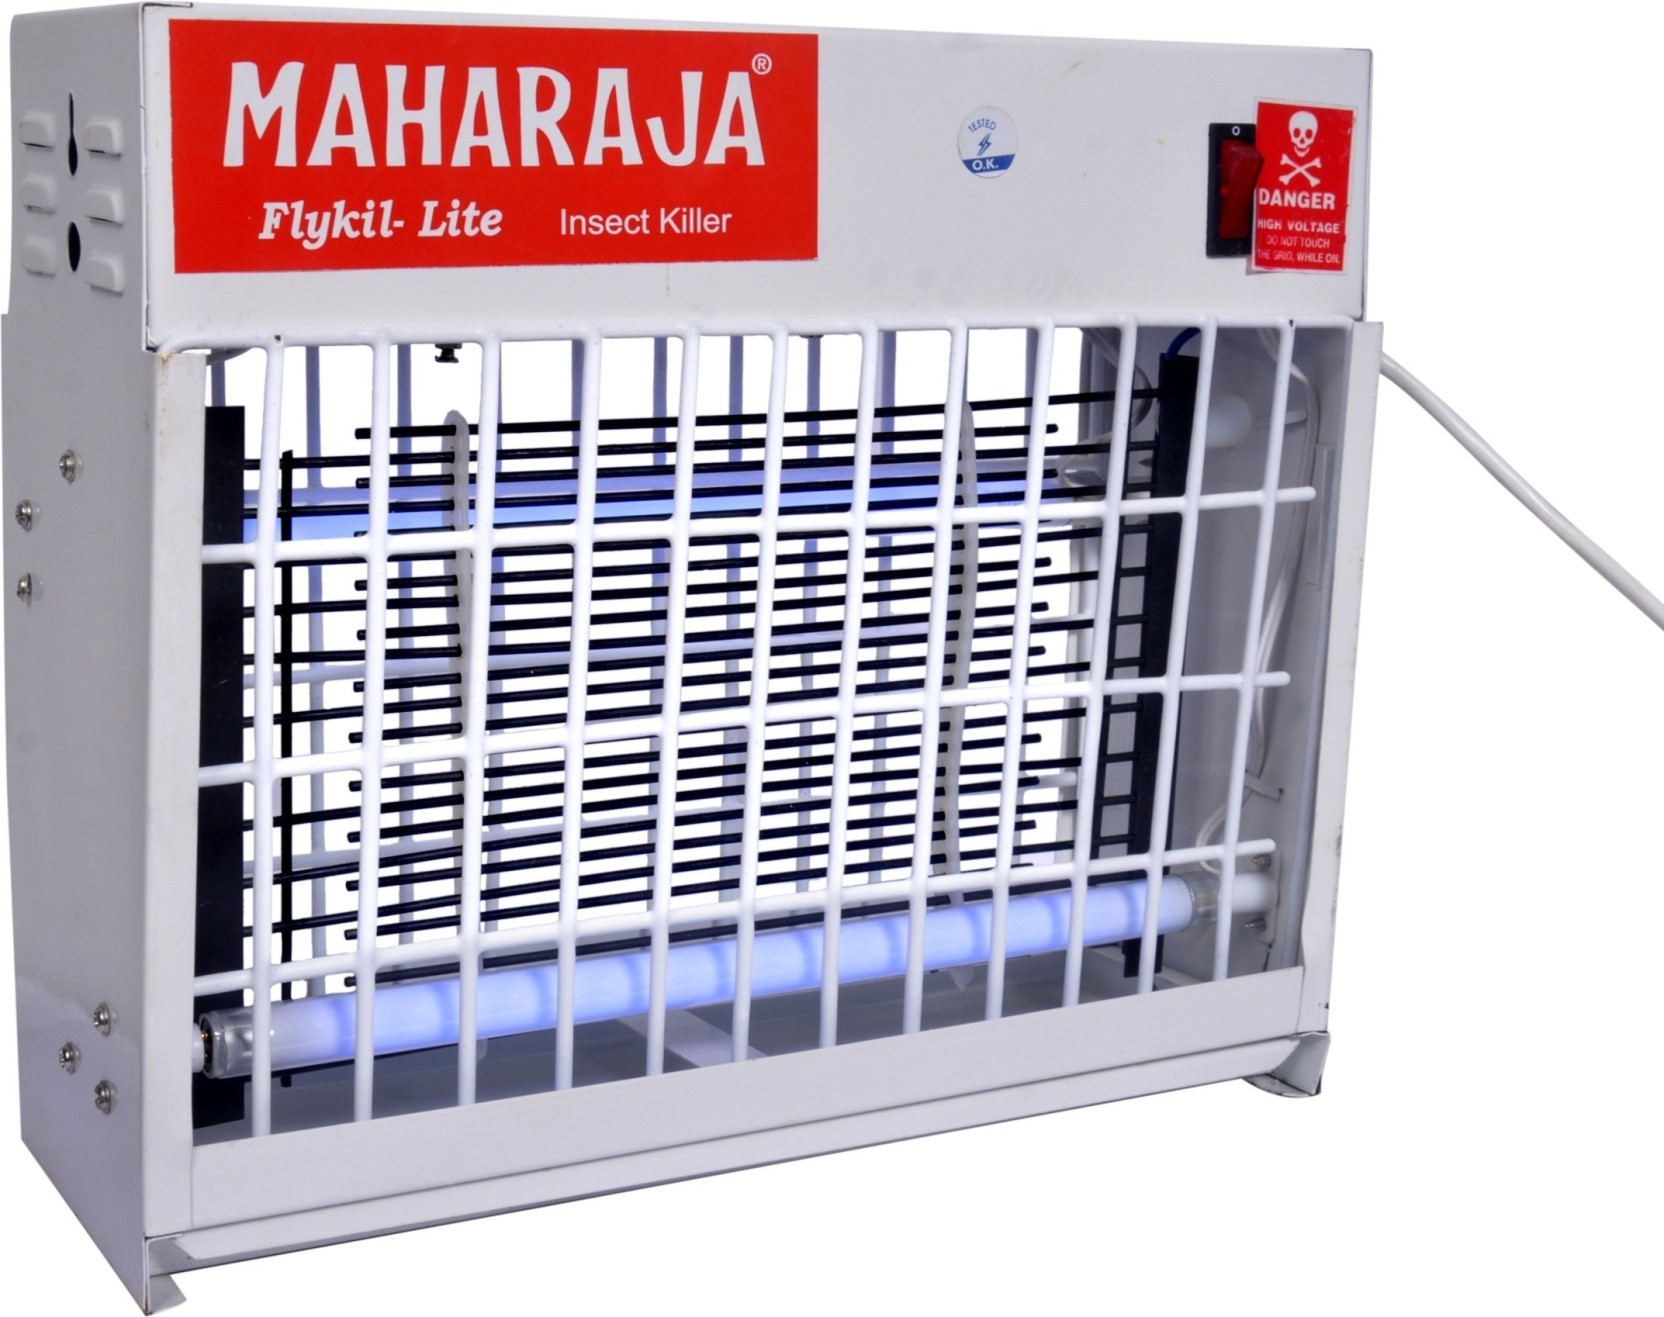 Maharaja Mk01 Electric Insect Killer Price In India Buy Mosquito Lamp Driver Board Circuit Home